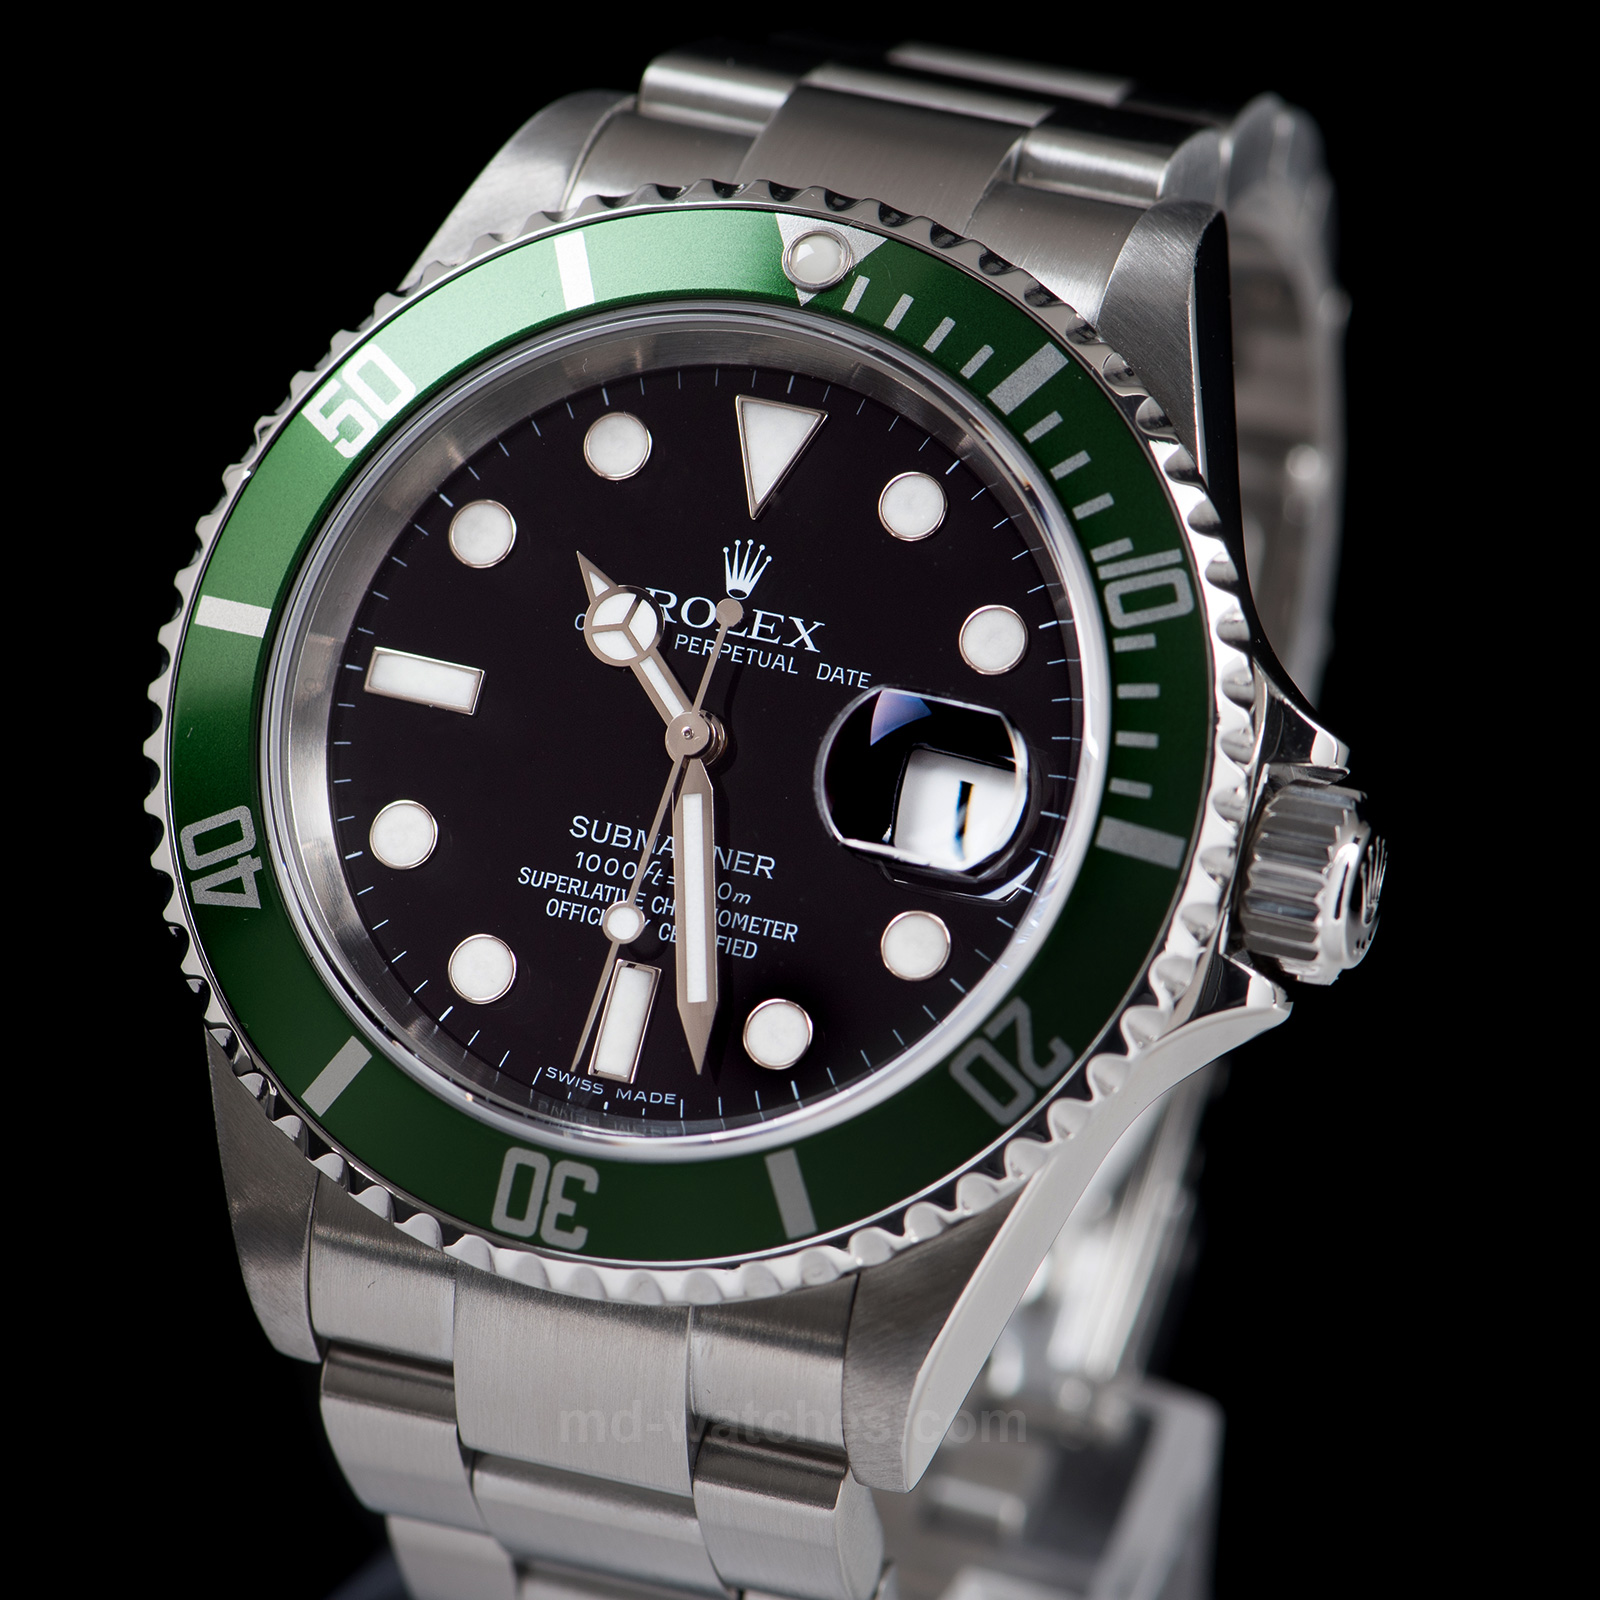 rolex submariner date green bezel 50th anniversary 16610lv. Black Bedroom Furniture Sets. Home Design Ideas